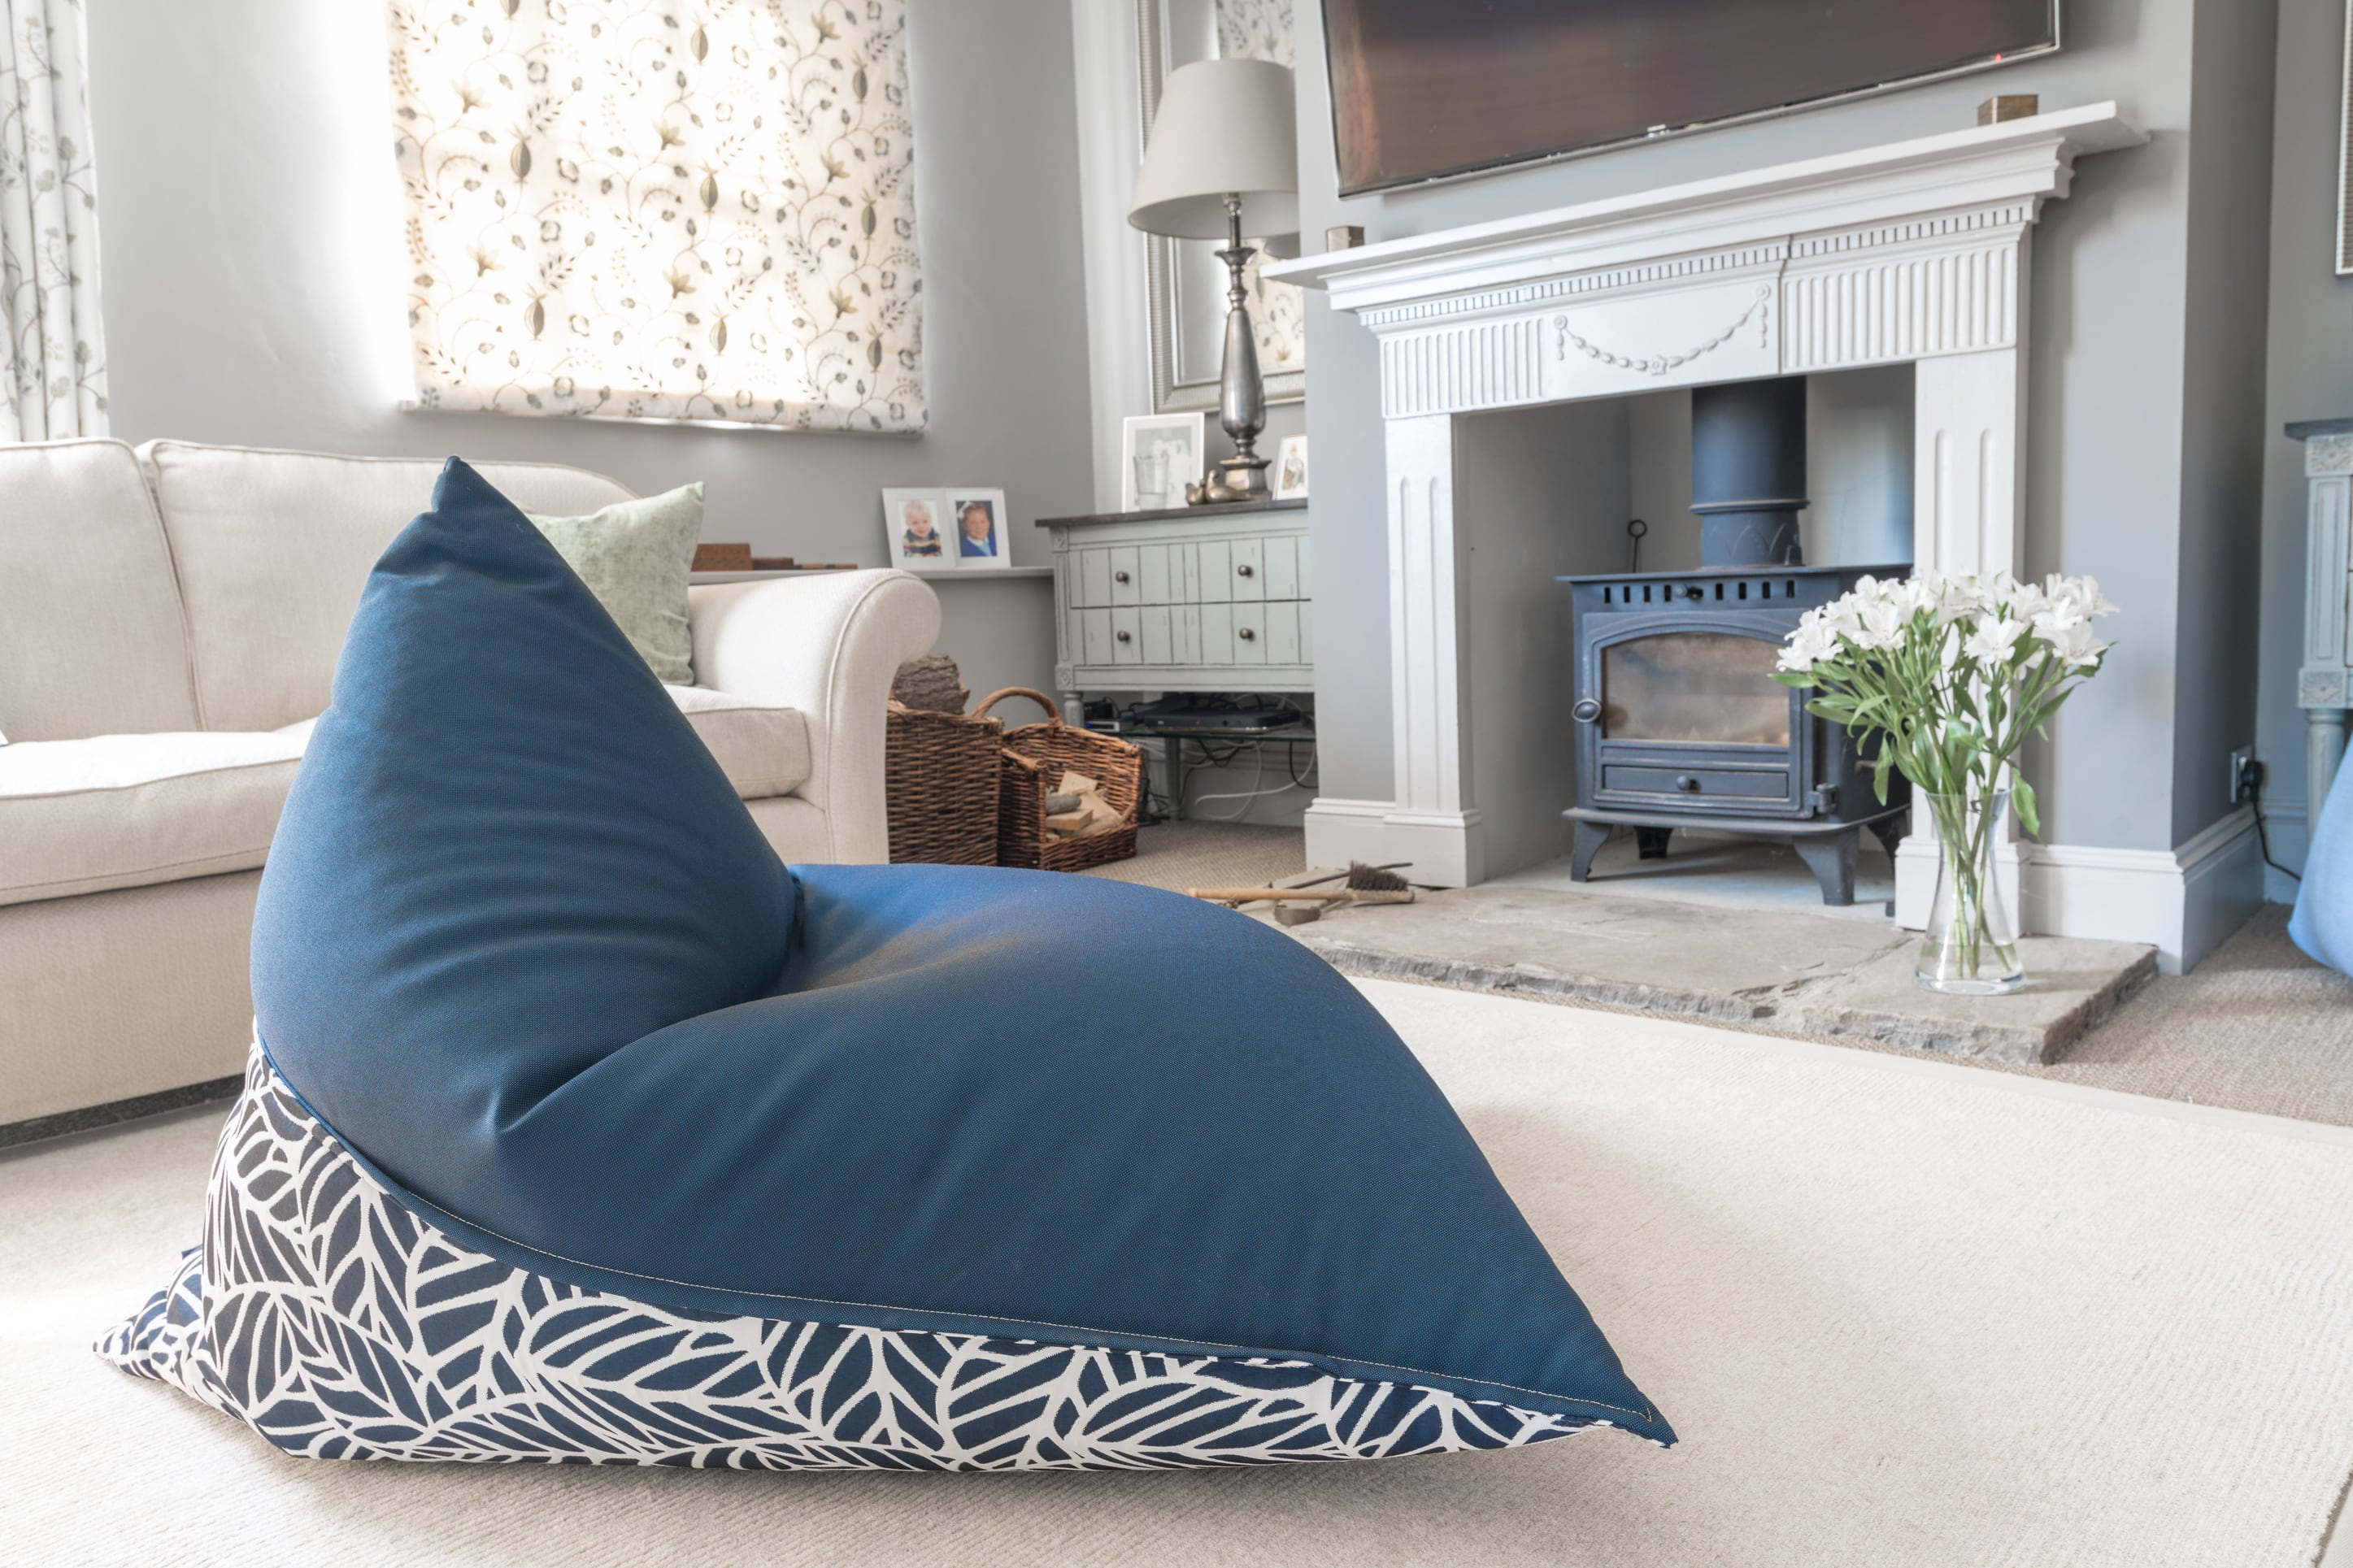 Armadillo Sun bean bag chair in navy blue and white palm pattern indoors by fireplace